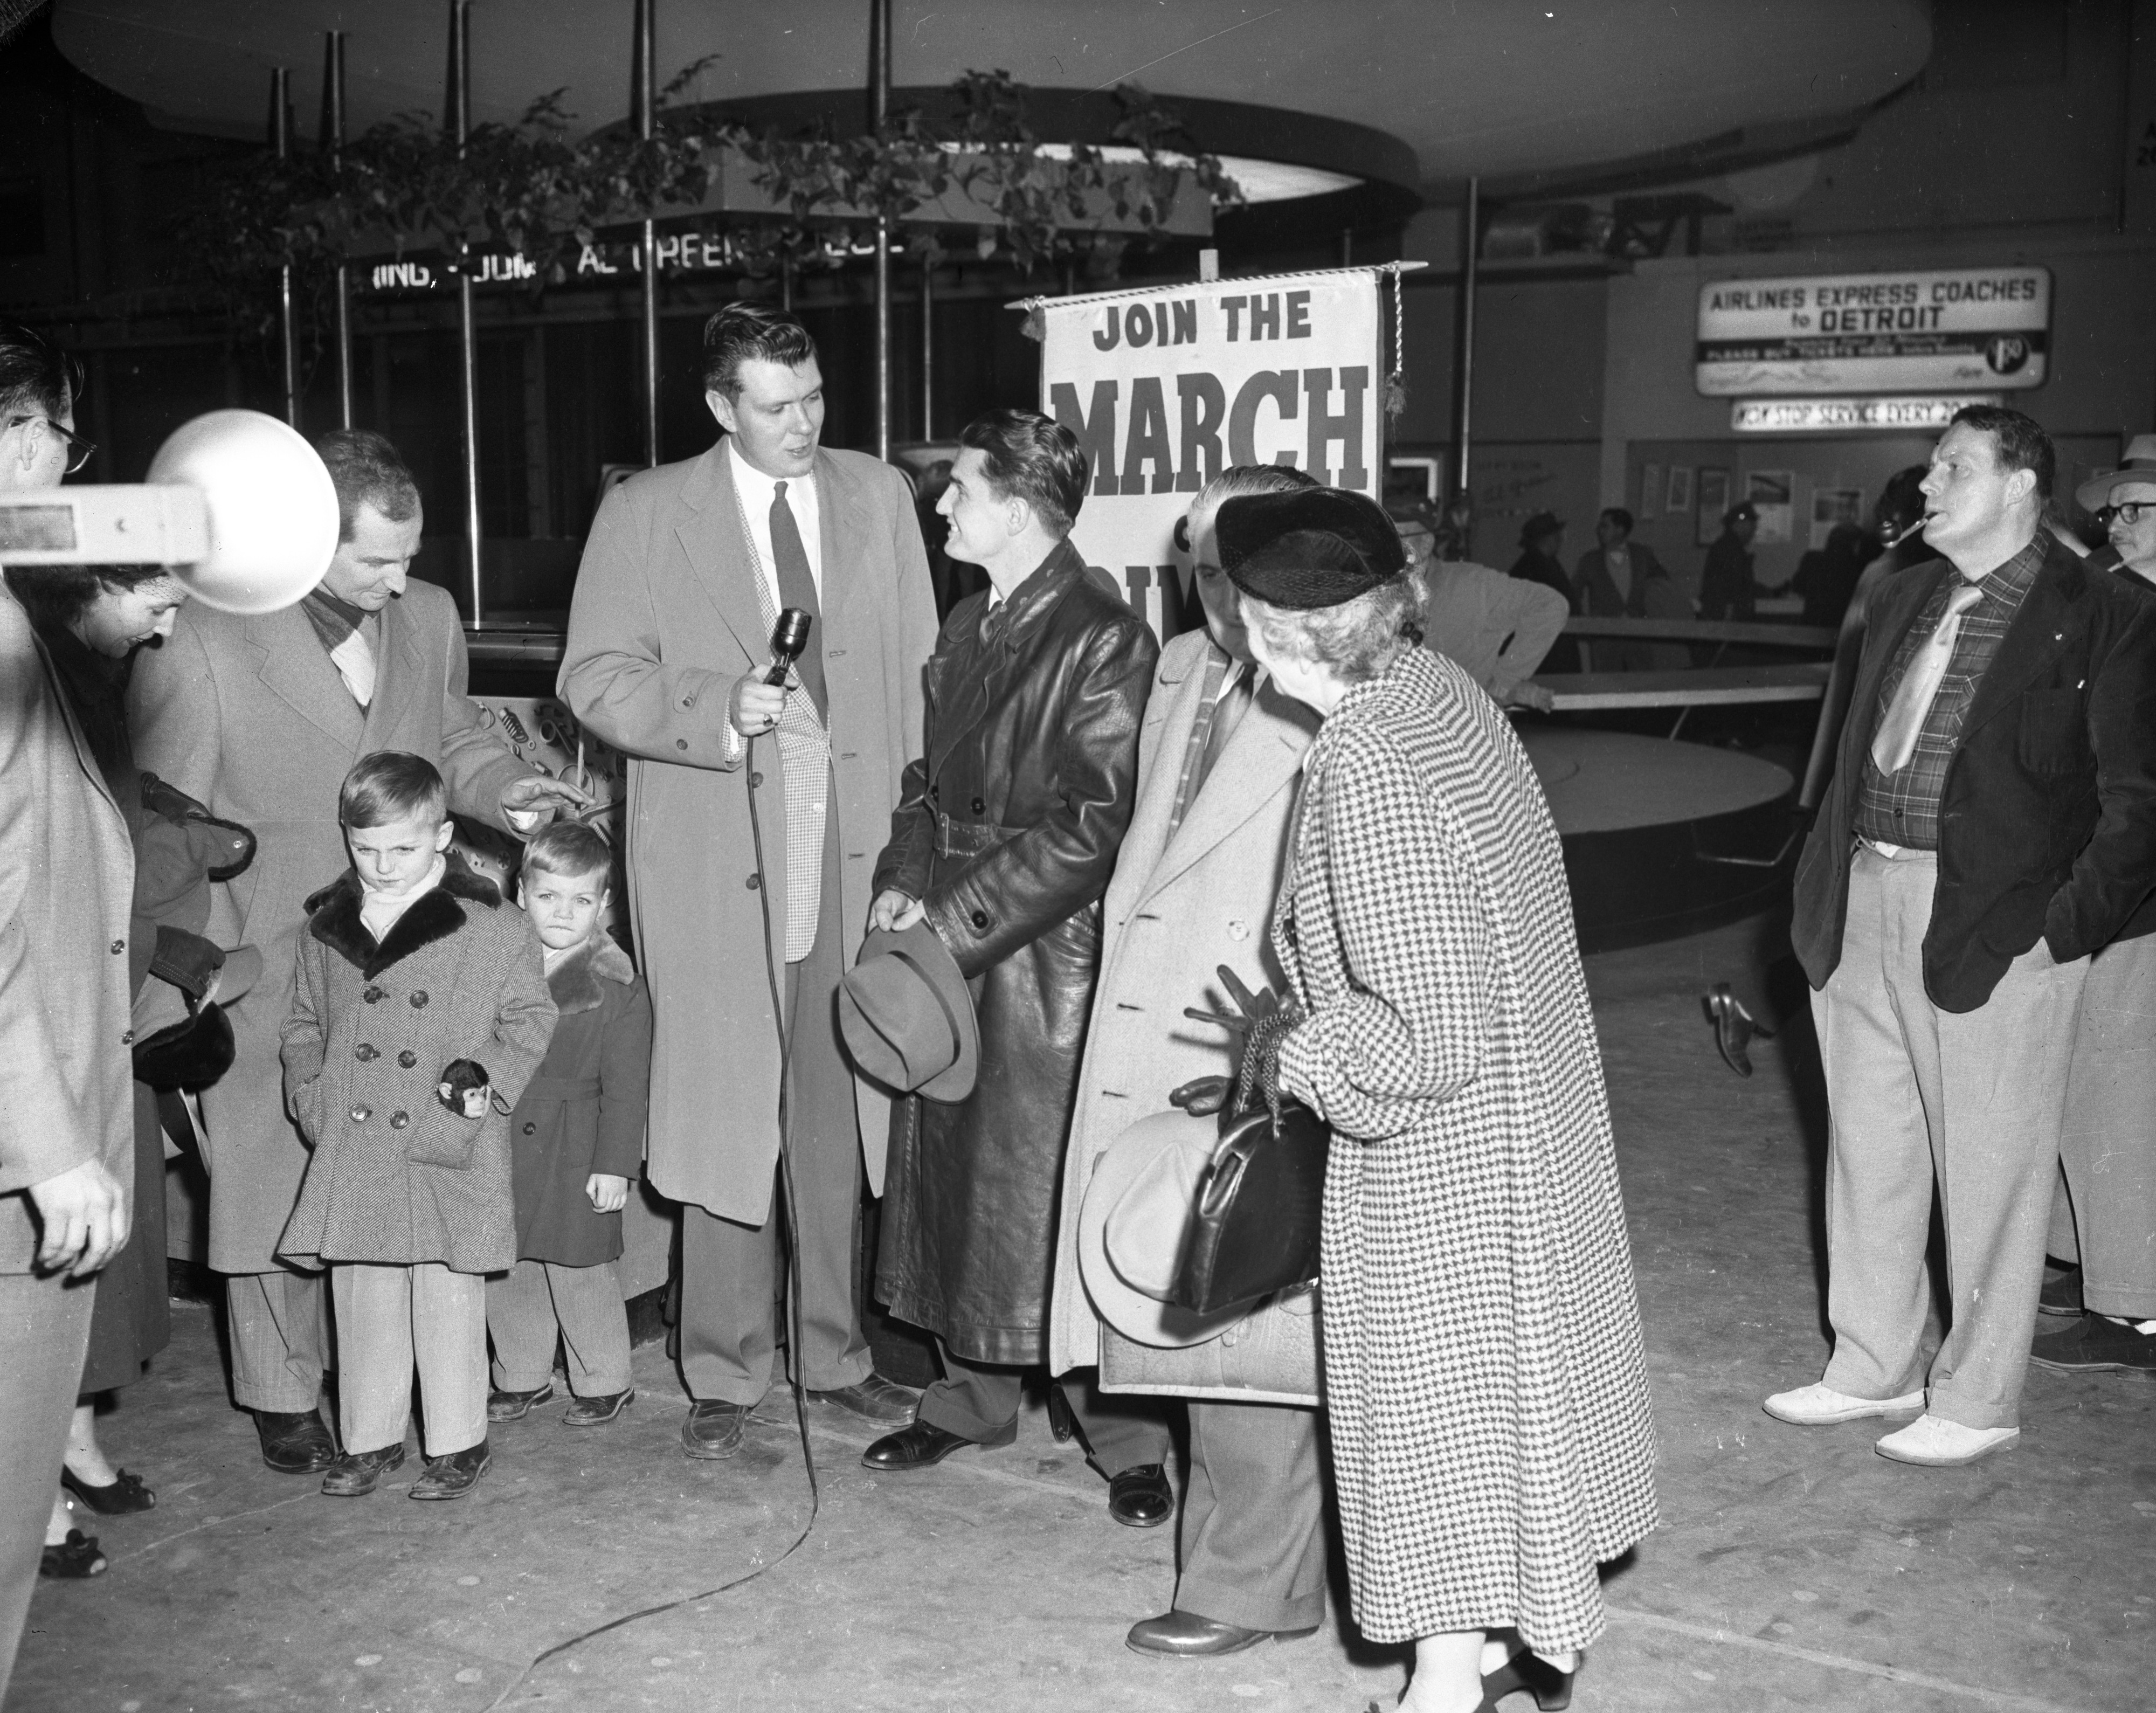 John Noble arrives at Willow Run Airport after spending 9 1/2 years in Russian prison camps, January 19 1955 image